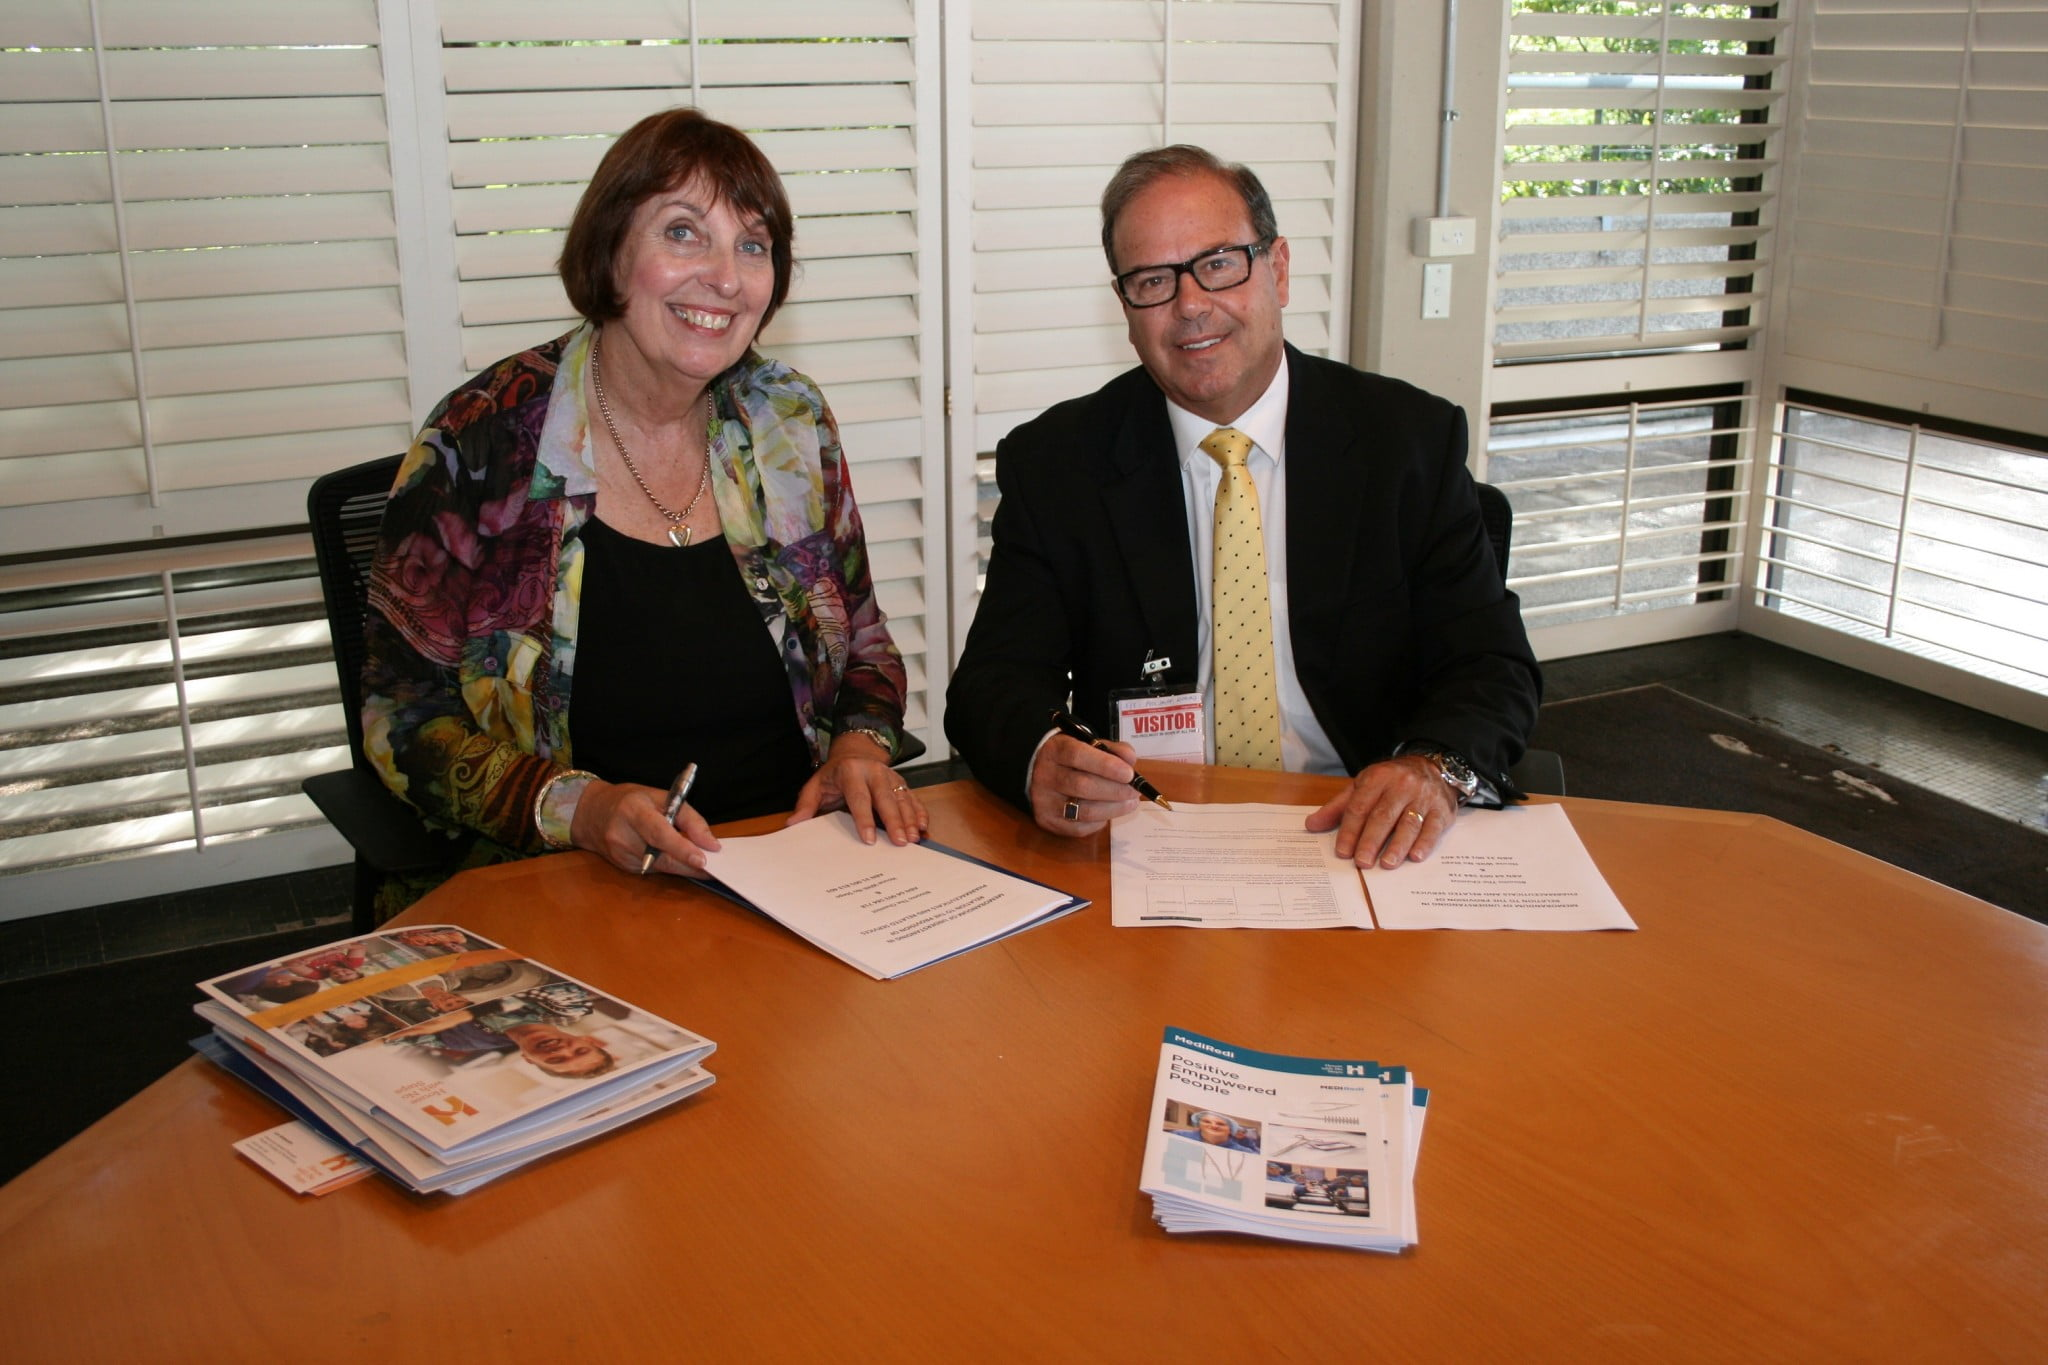 Lyn Ainsworth Head of Strategy People Practice with Phil Smith Blooms The Chemist CEO